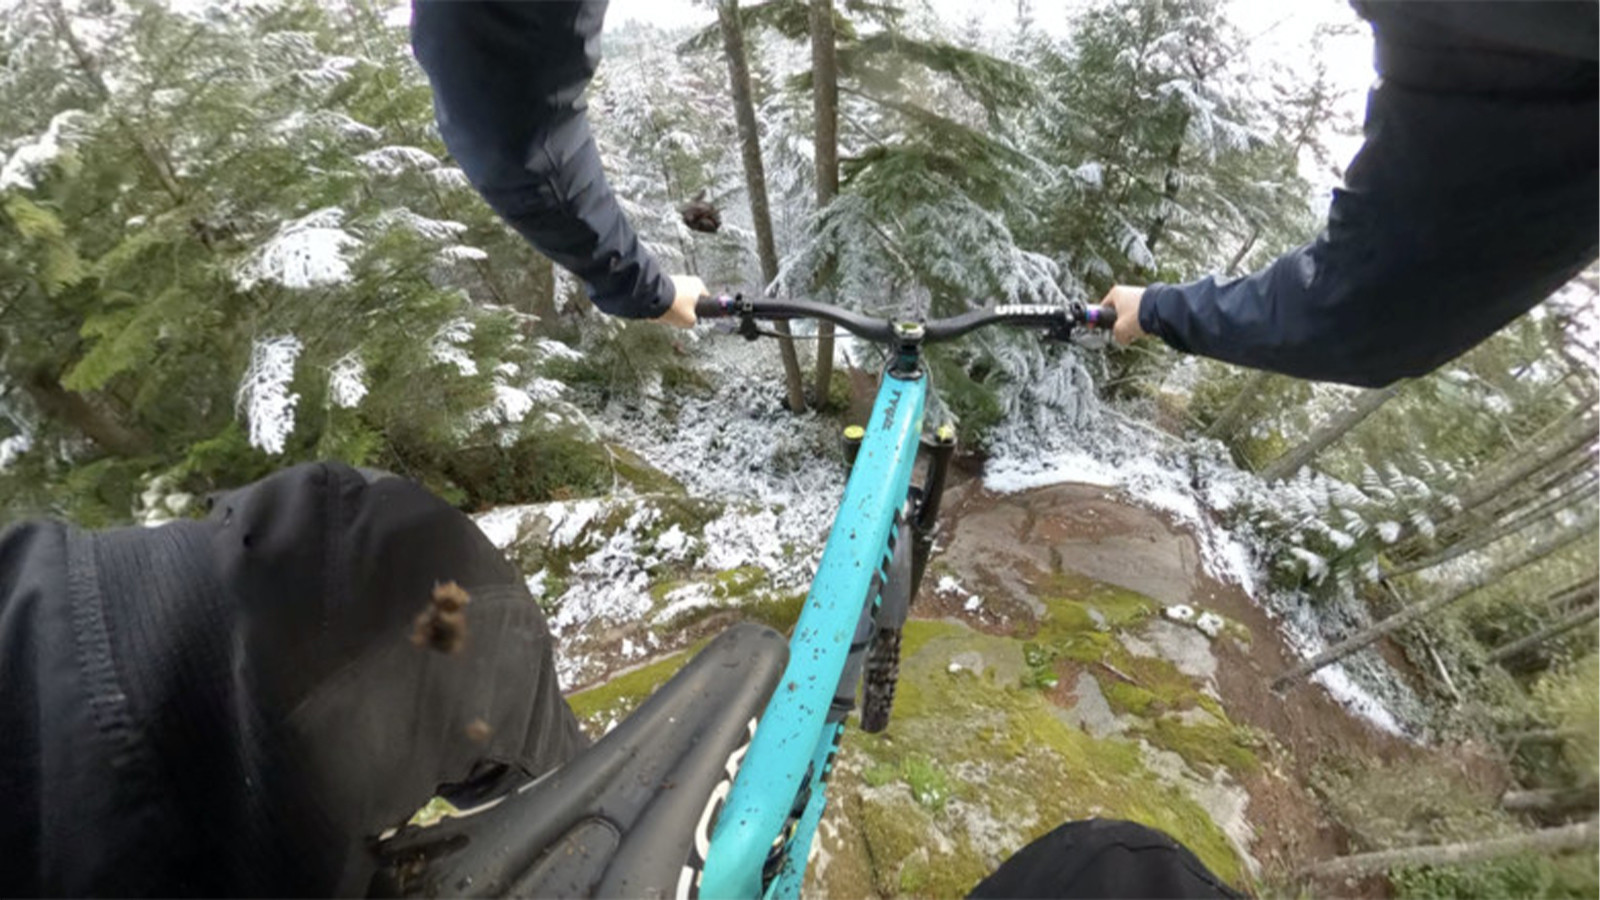 Slabs in the Snow - Remy Metailler is Way Too Excited to Ride His New Bike